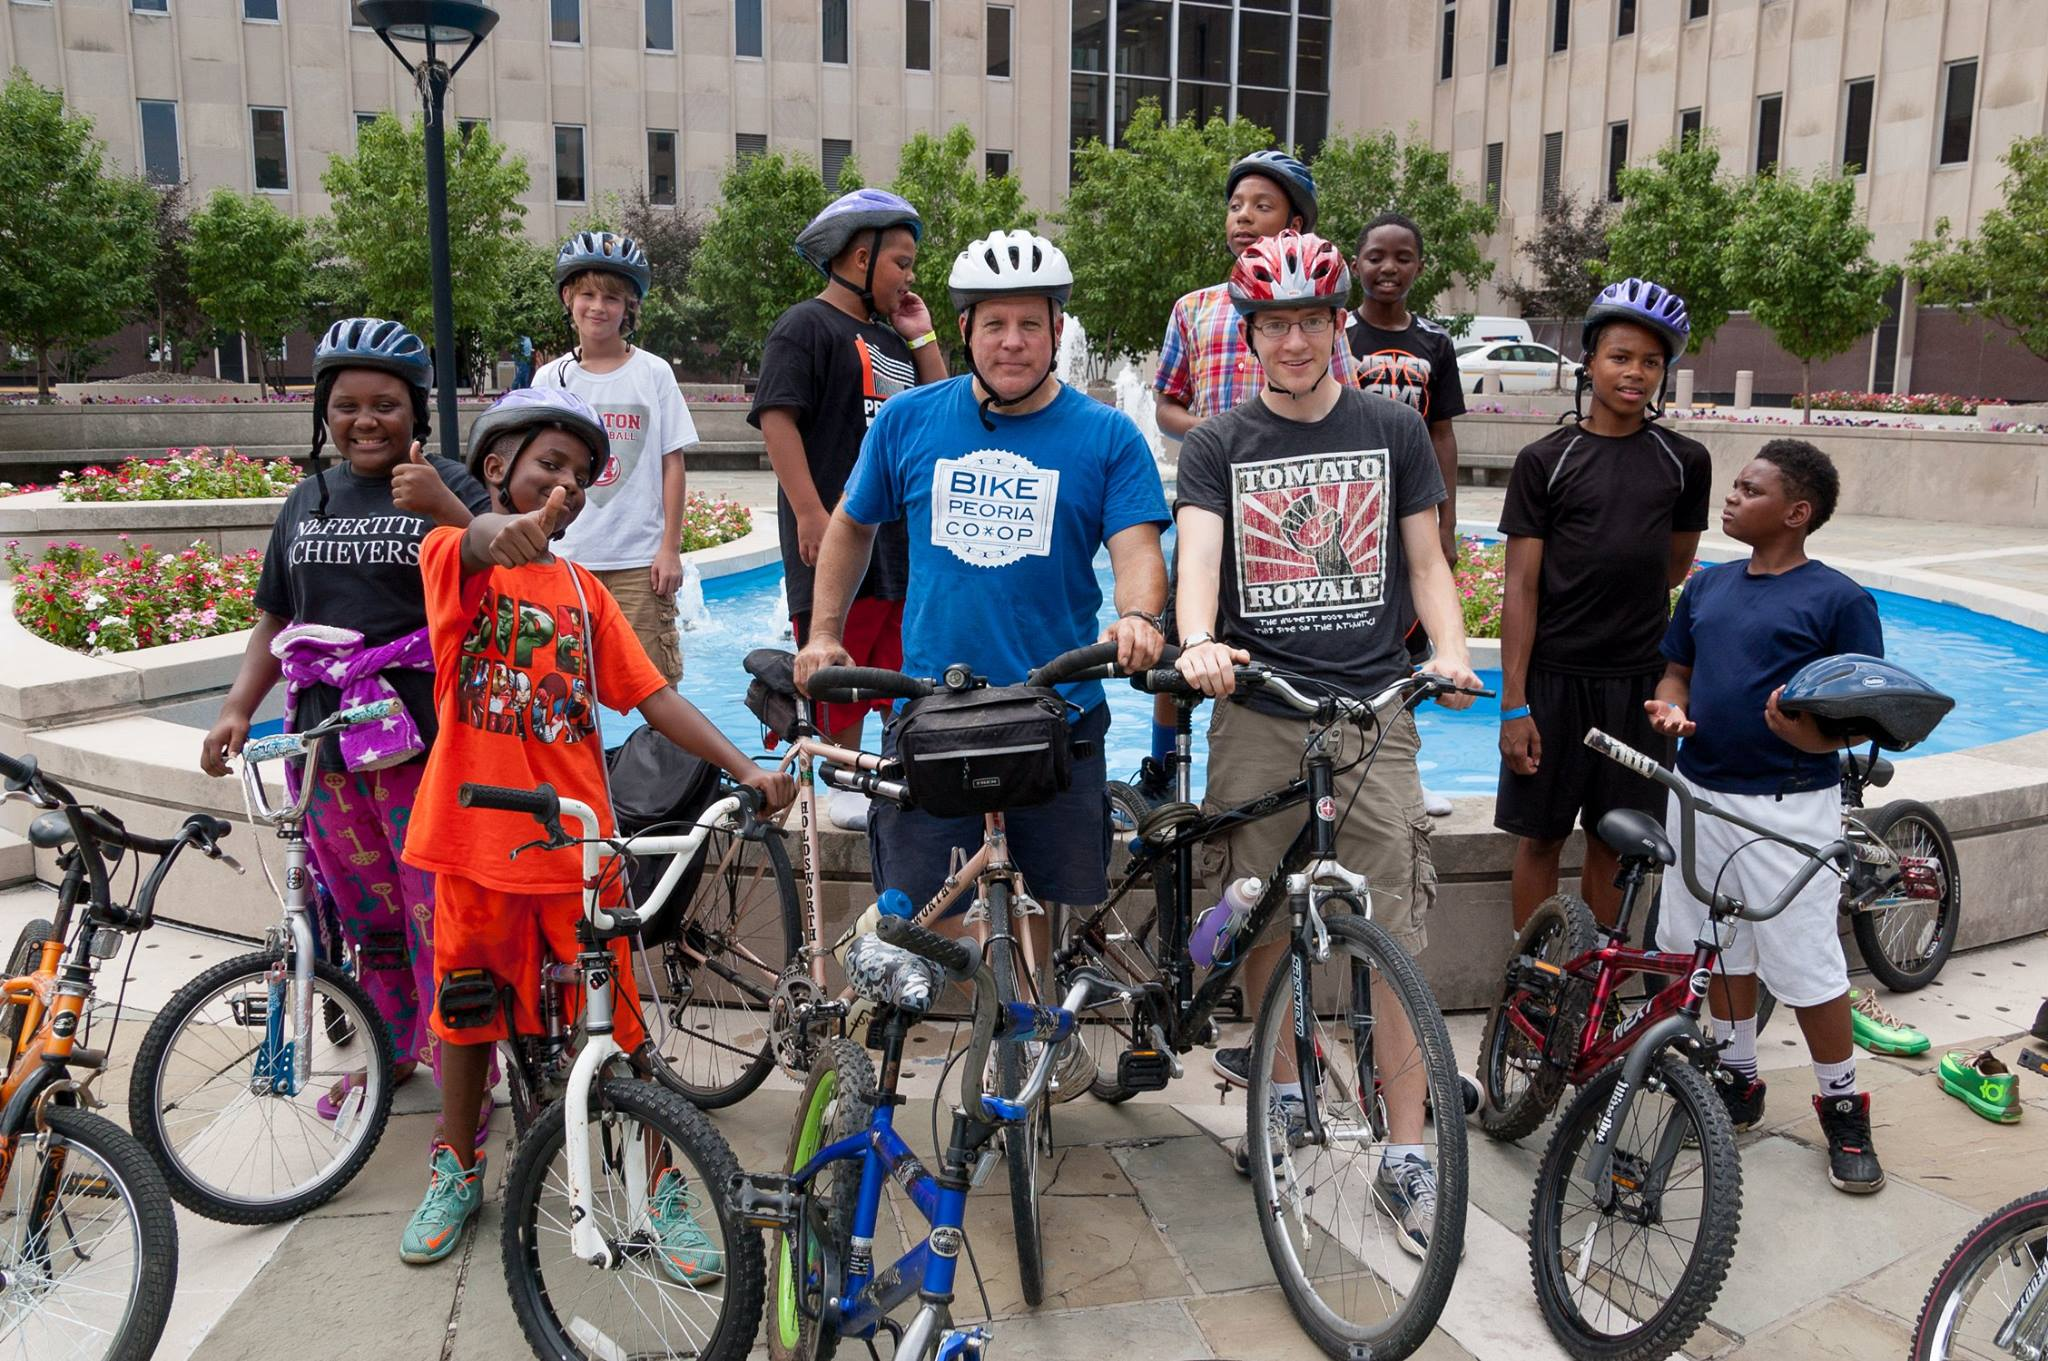 The summer cohort of Bike Peoria Co-op's Earn-a-Bike program through Dream Center.